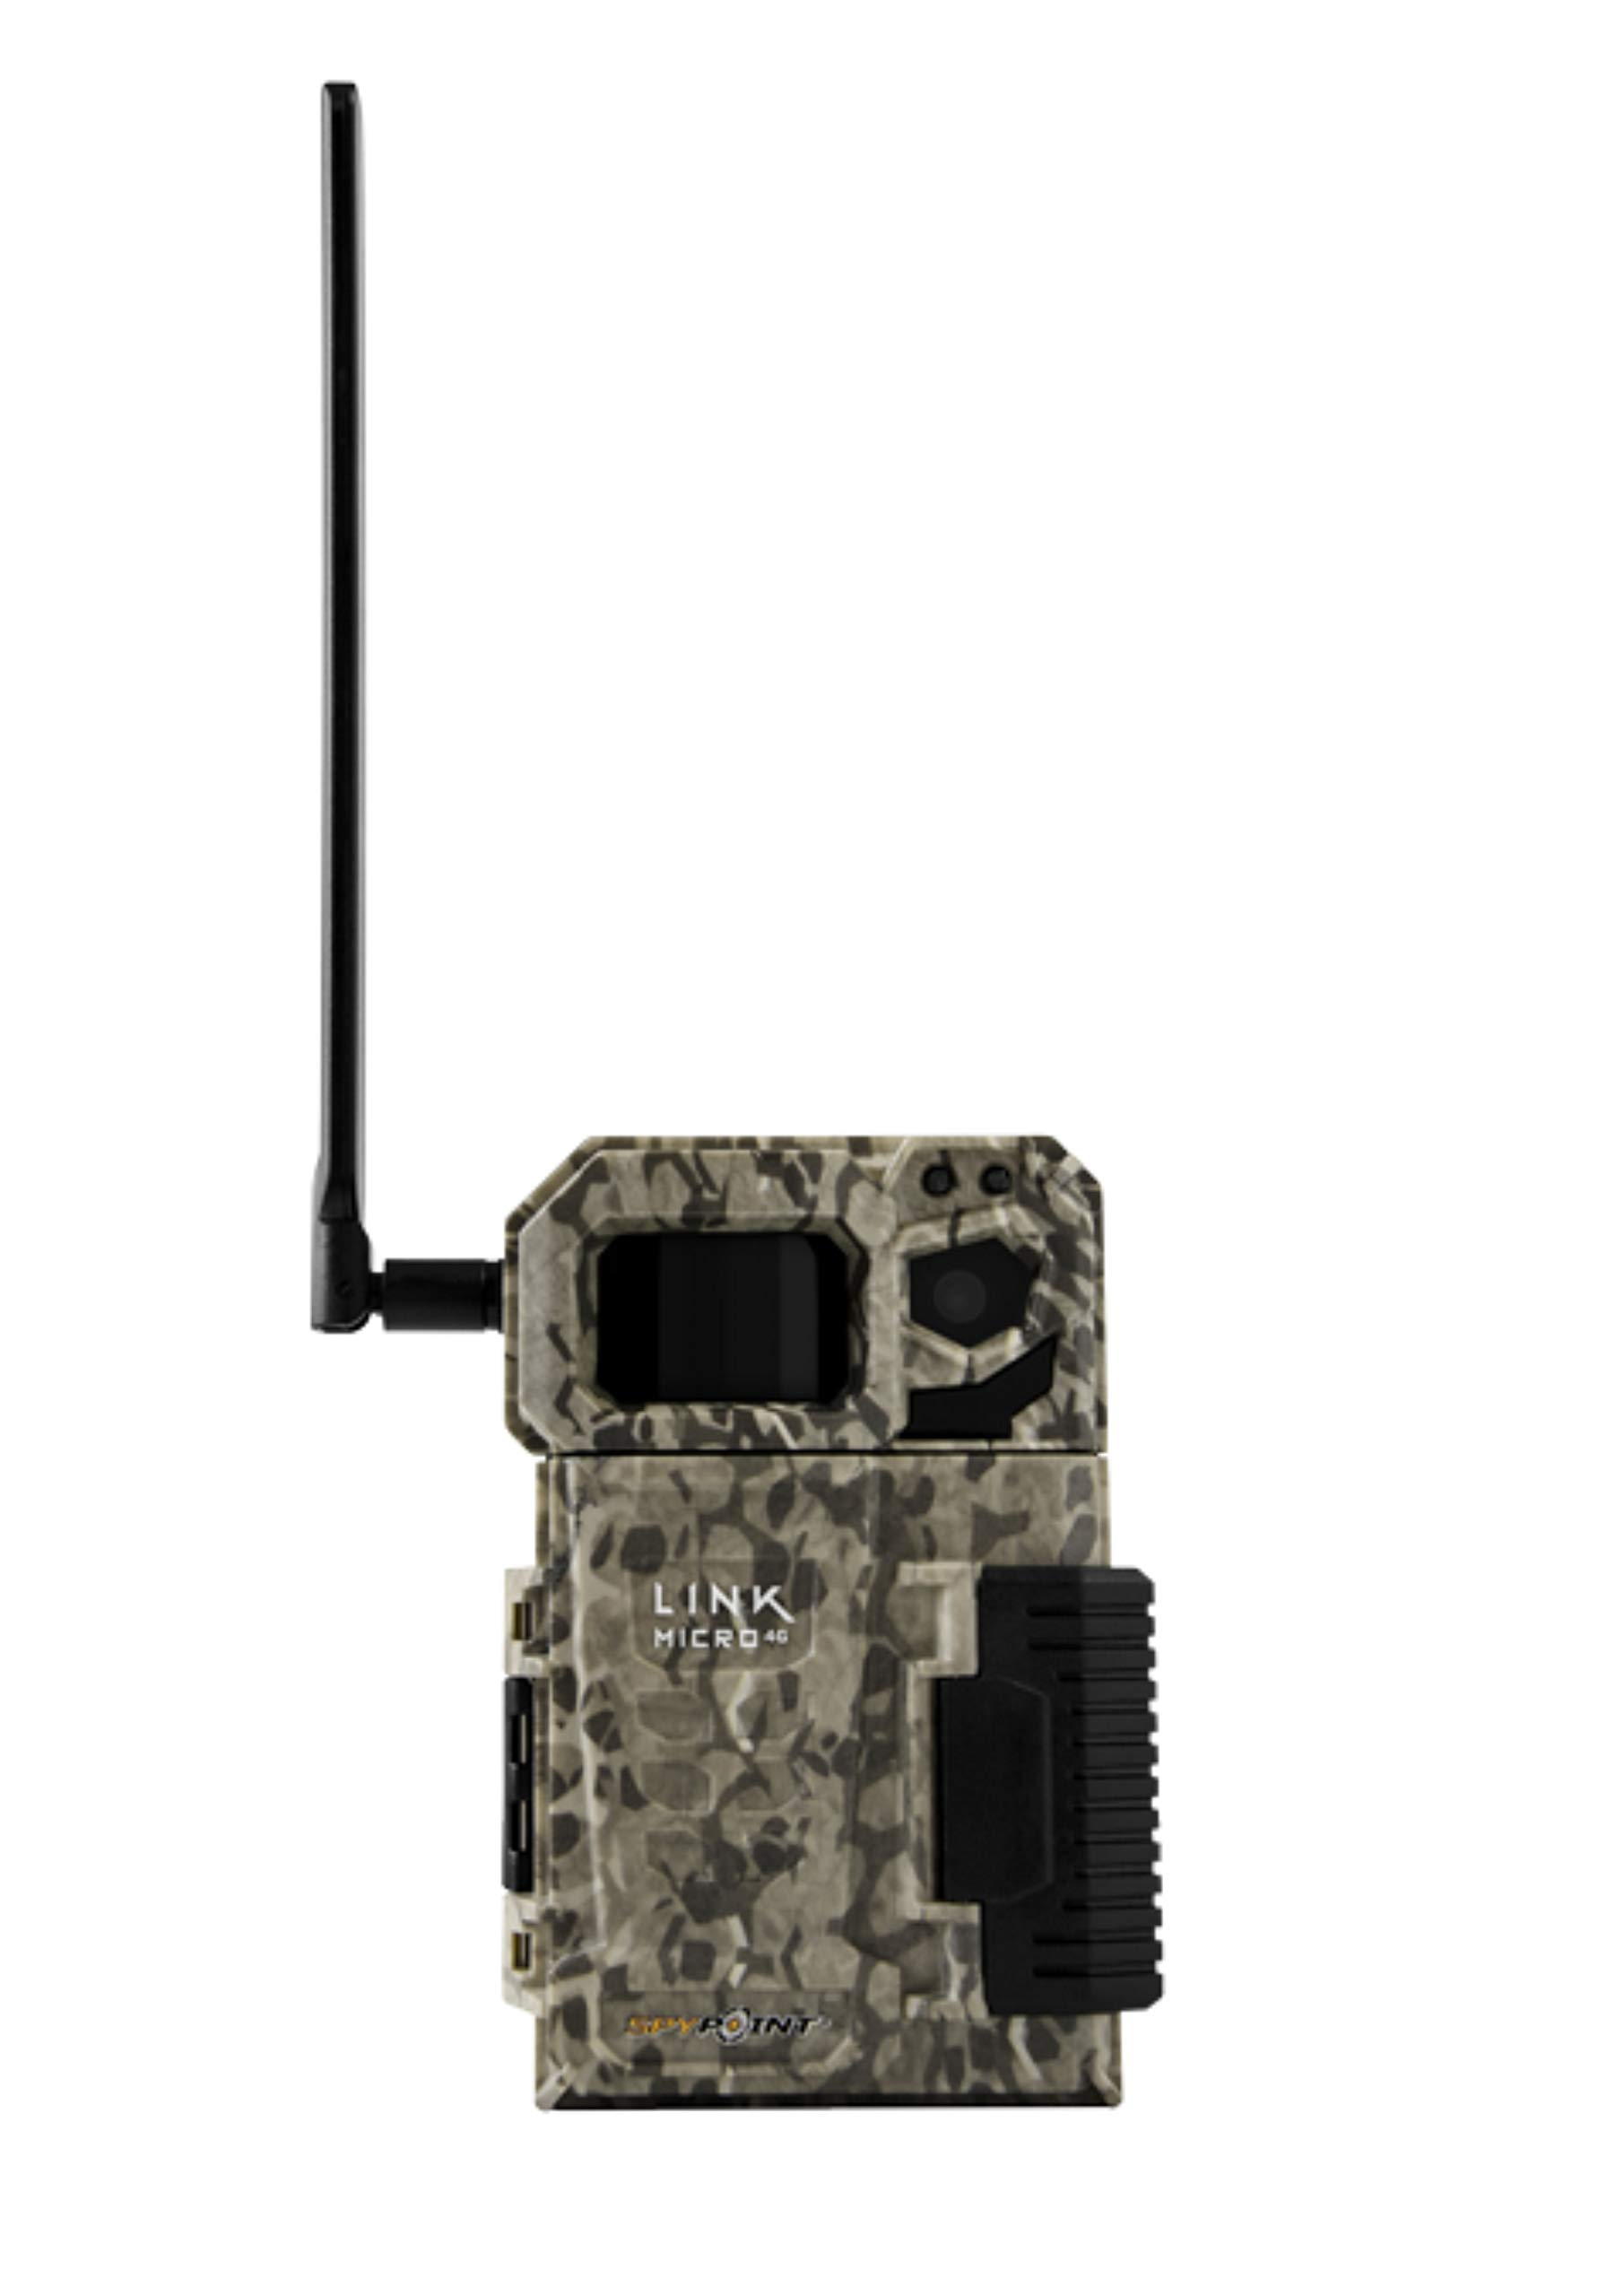 SPYPOINT Link Micro Nationwide Version (Smallest on The Market!) Wireless/Cellular Trail Camera, 4 Power LEDs, Fast 4G Photo Transmission w/Preactivated SIM, Fully Configurable via App by SPYPOINT